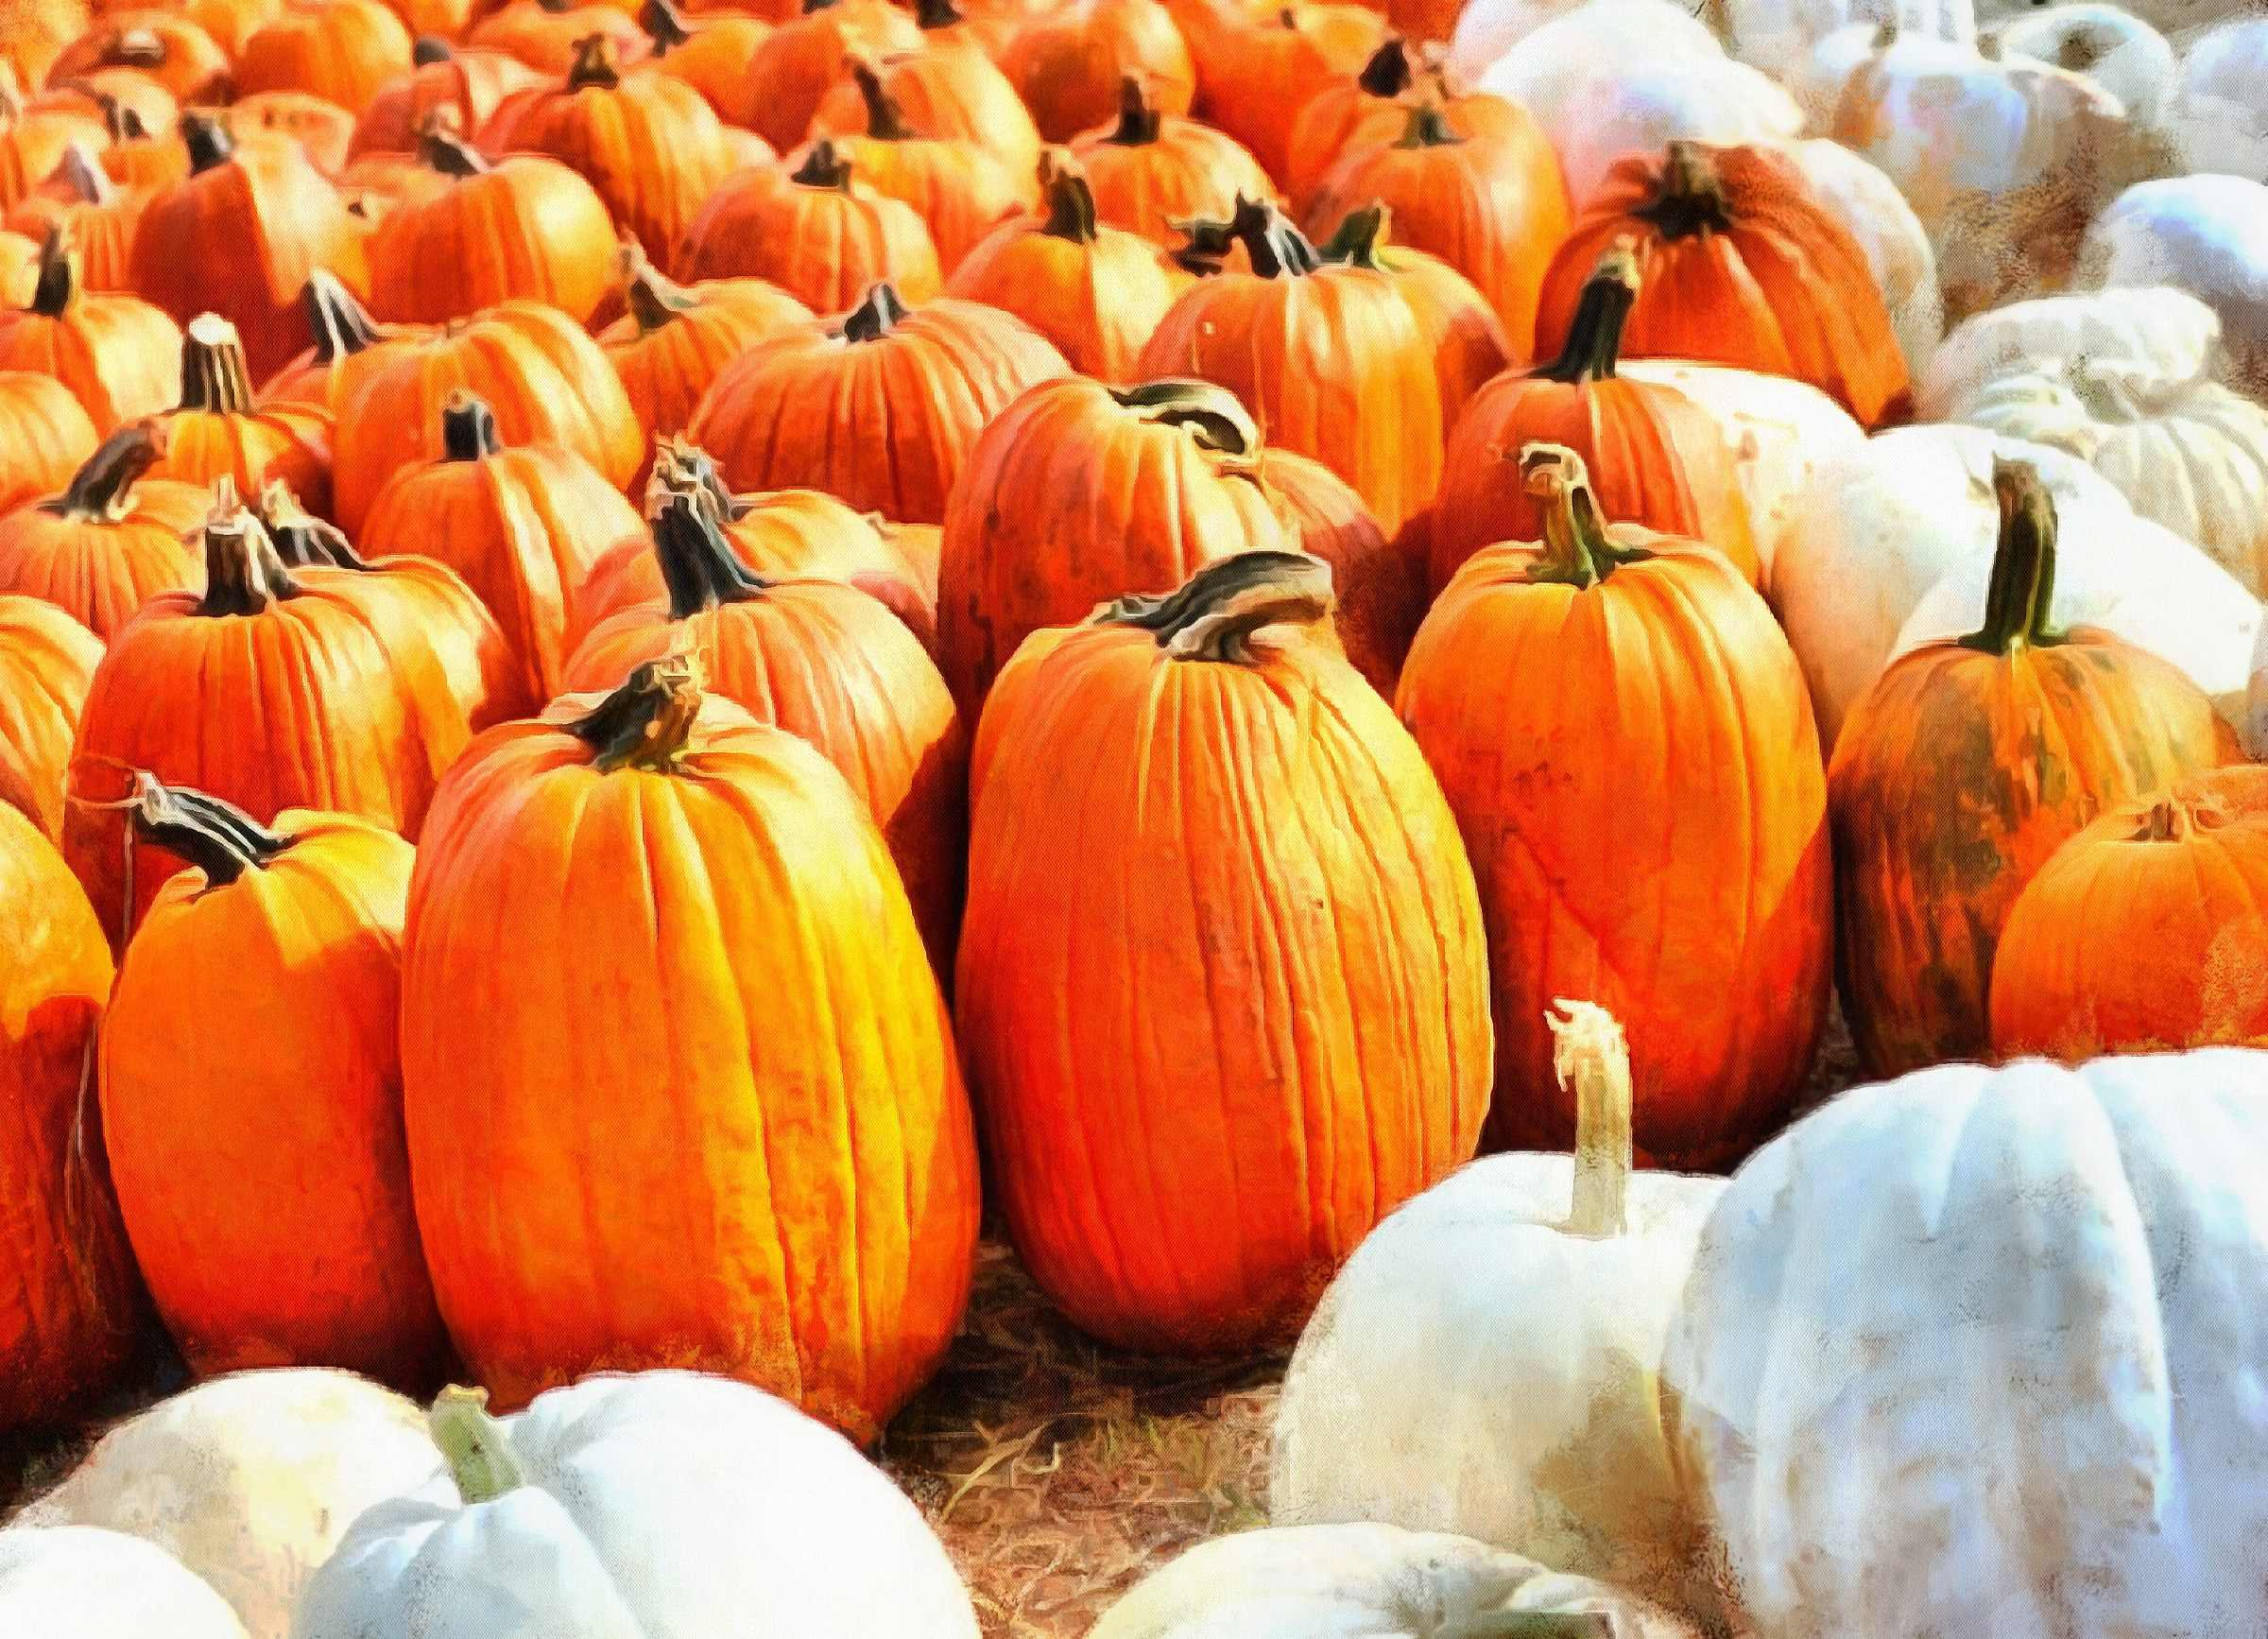 vegetables, harvest, pumpkin, thanksgiving, holiday, - thanksgiving, stock free image, public domain photos, free stock photo, download public domain images.